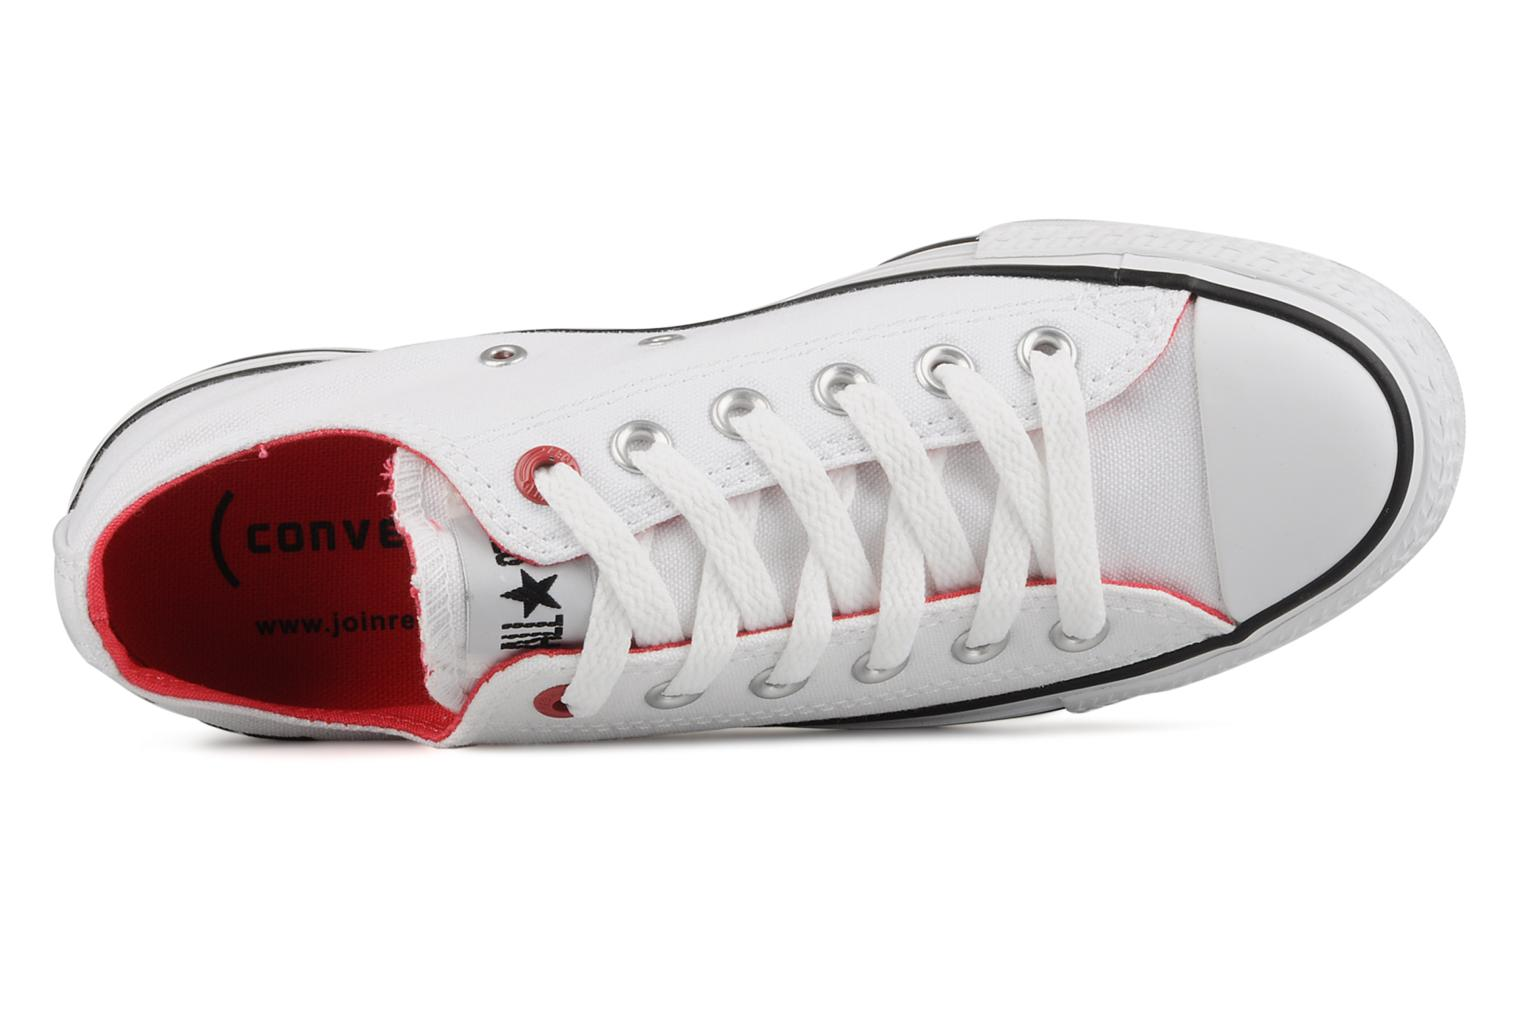 Trainers Converse Chuck taylor all star red i am … ox w White view from the left